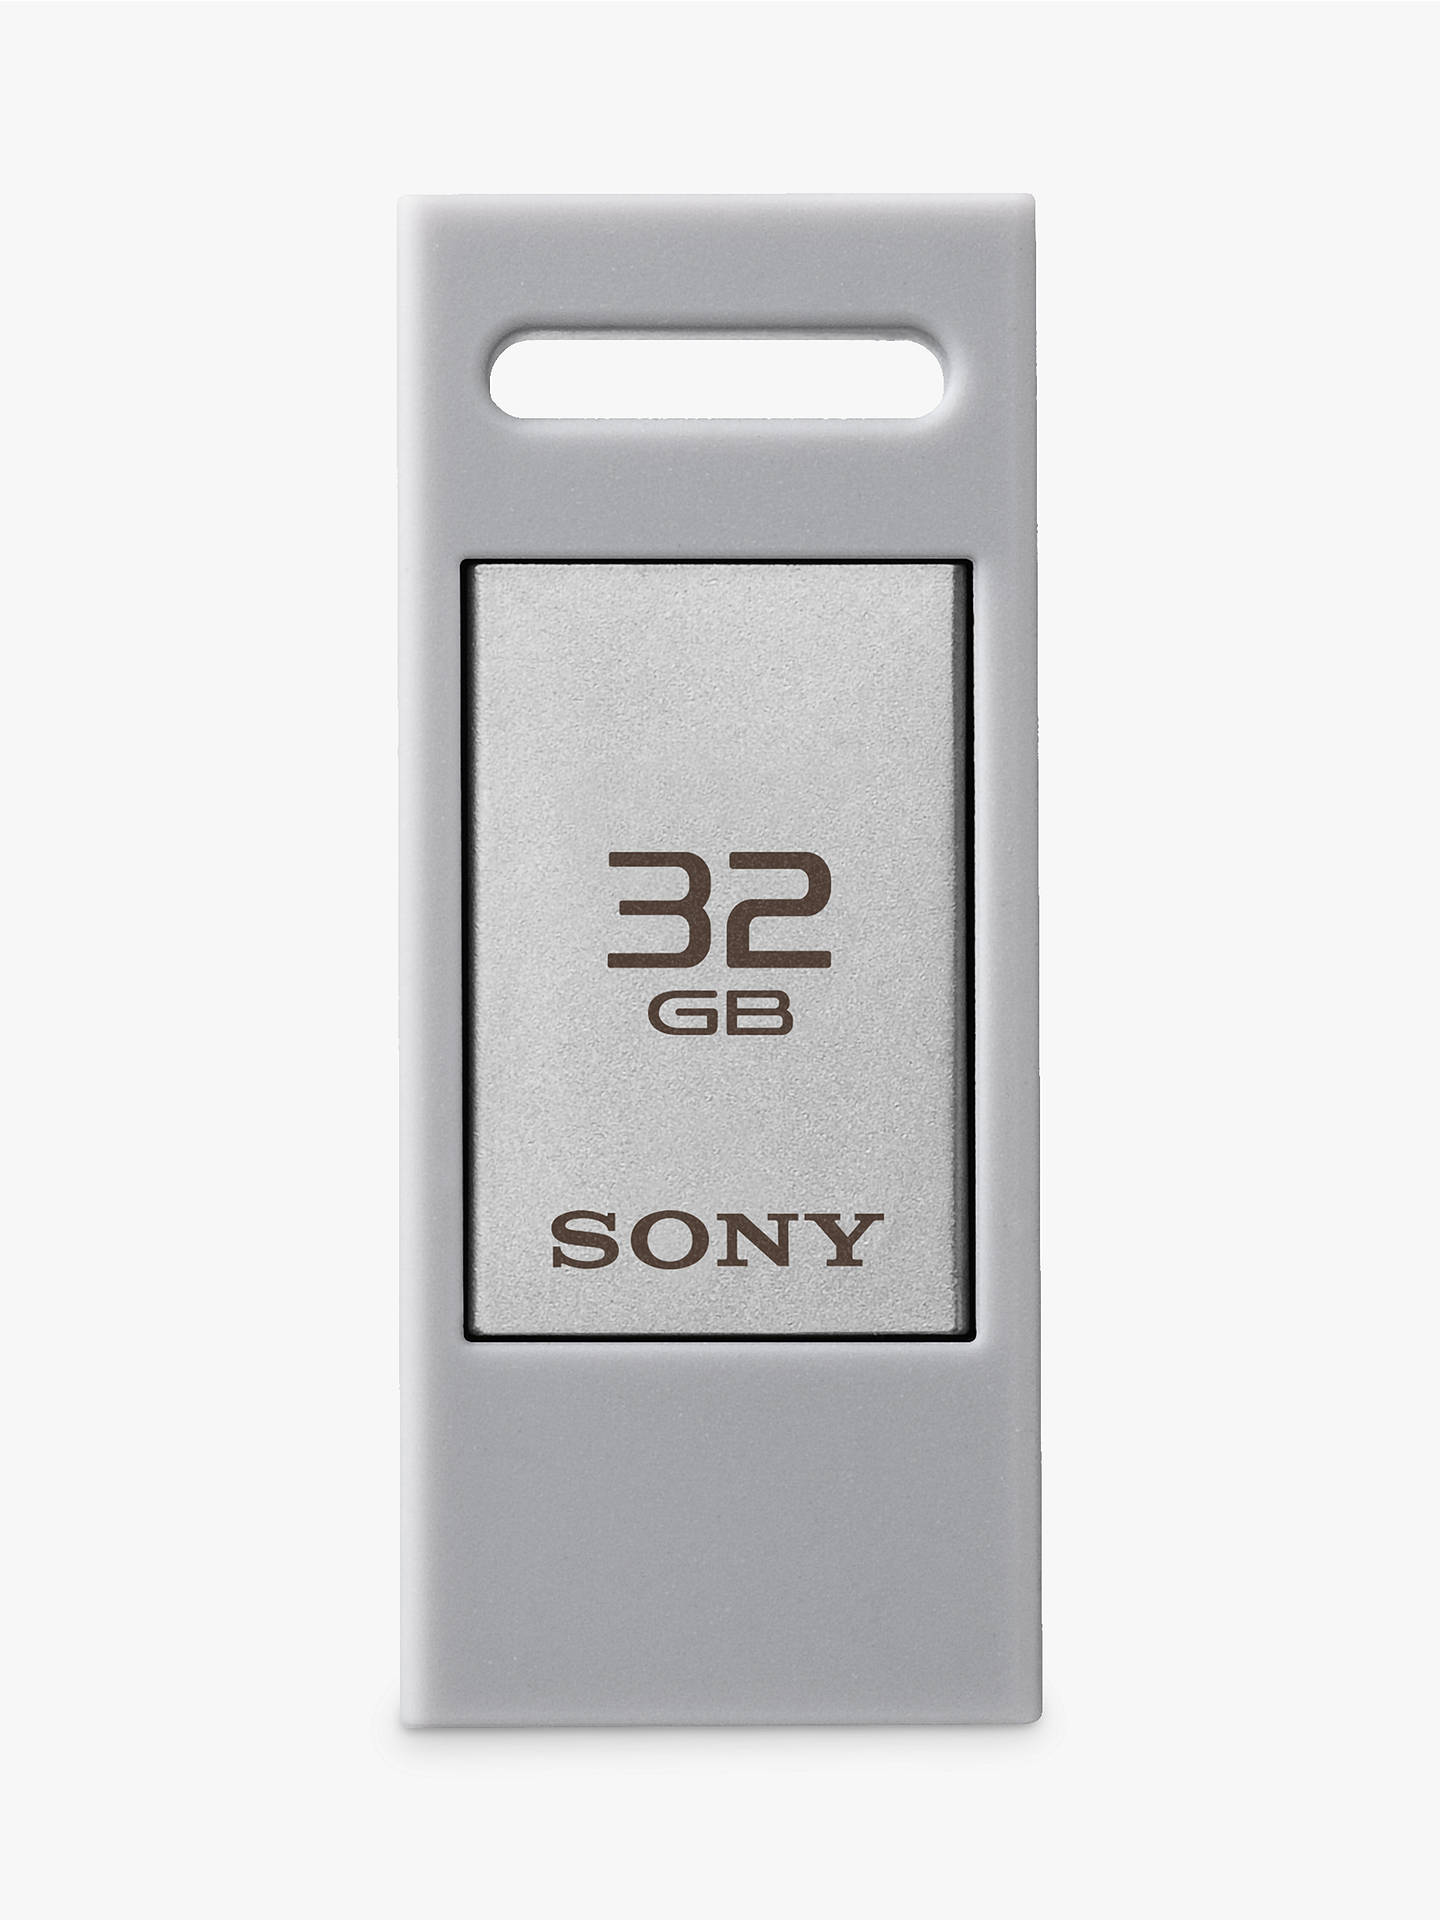 BuySony Portable USB Flash Storage Drive, White, 32GB Online at johnlewis.com